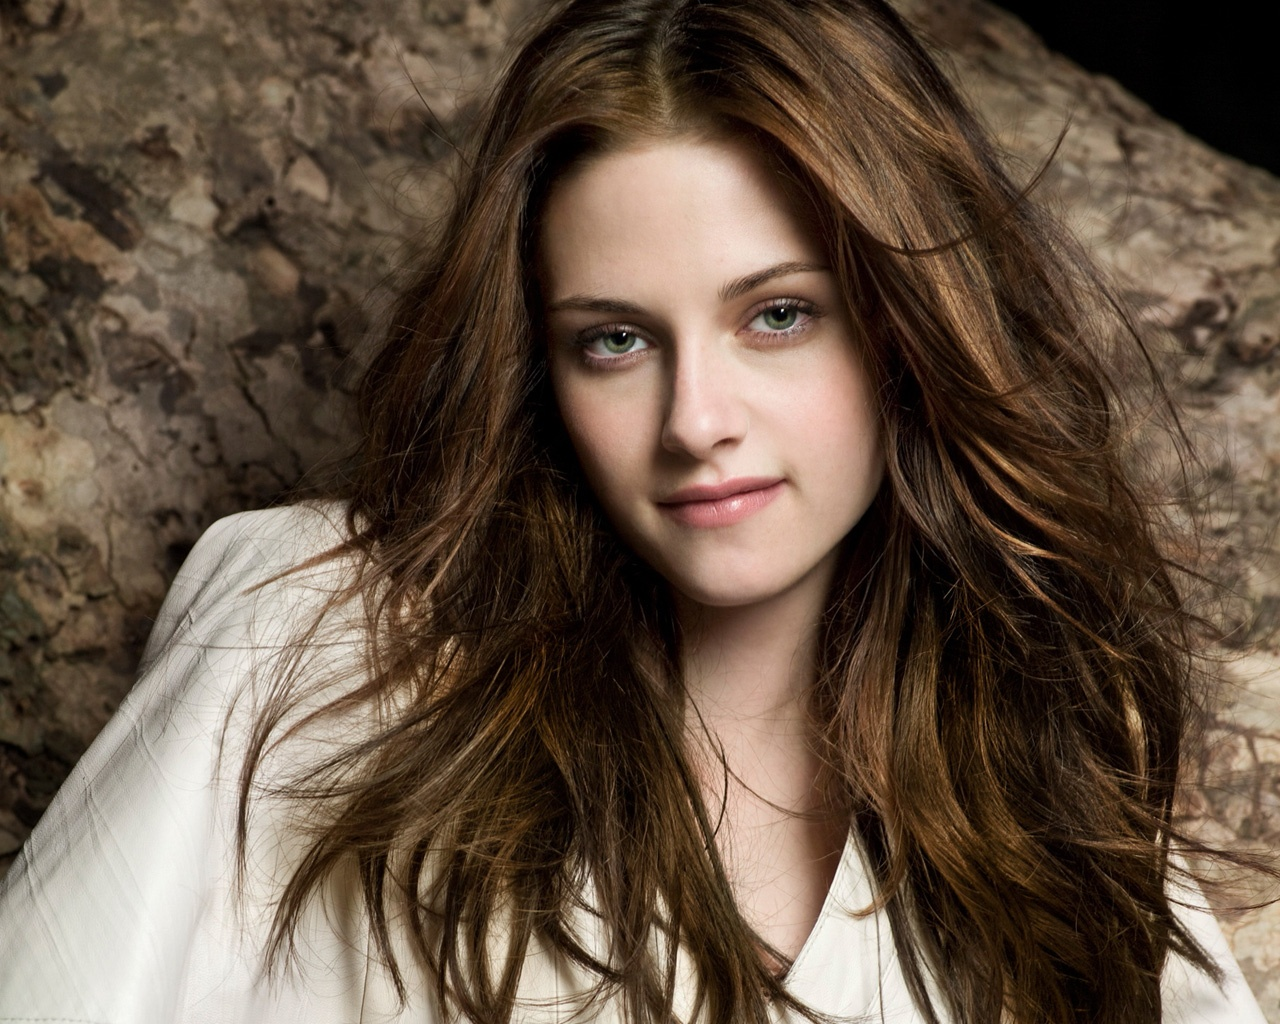 Wallpaper photo girl wallpapers for free download about 3253 kristen stewart twilight girl voltagebd Image collections